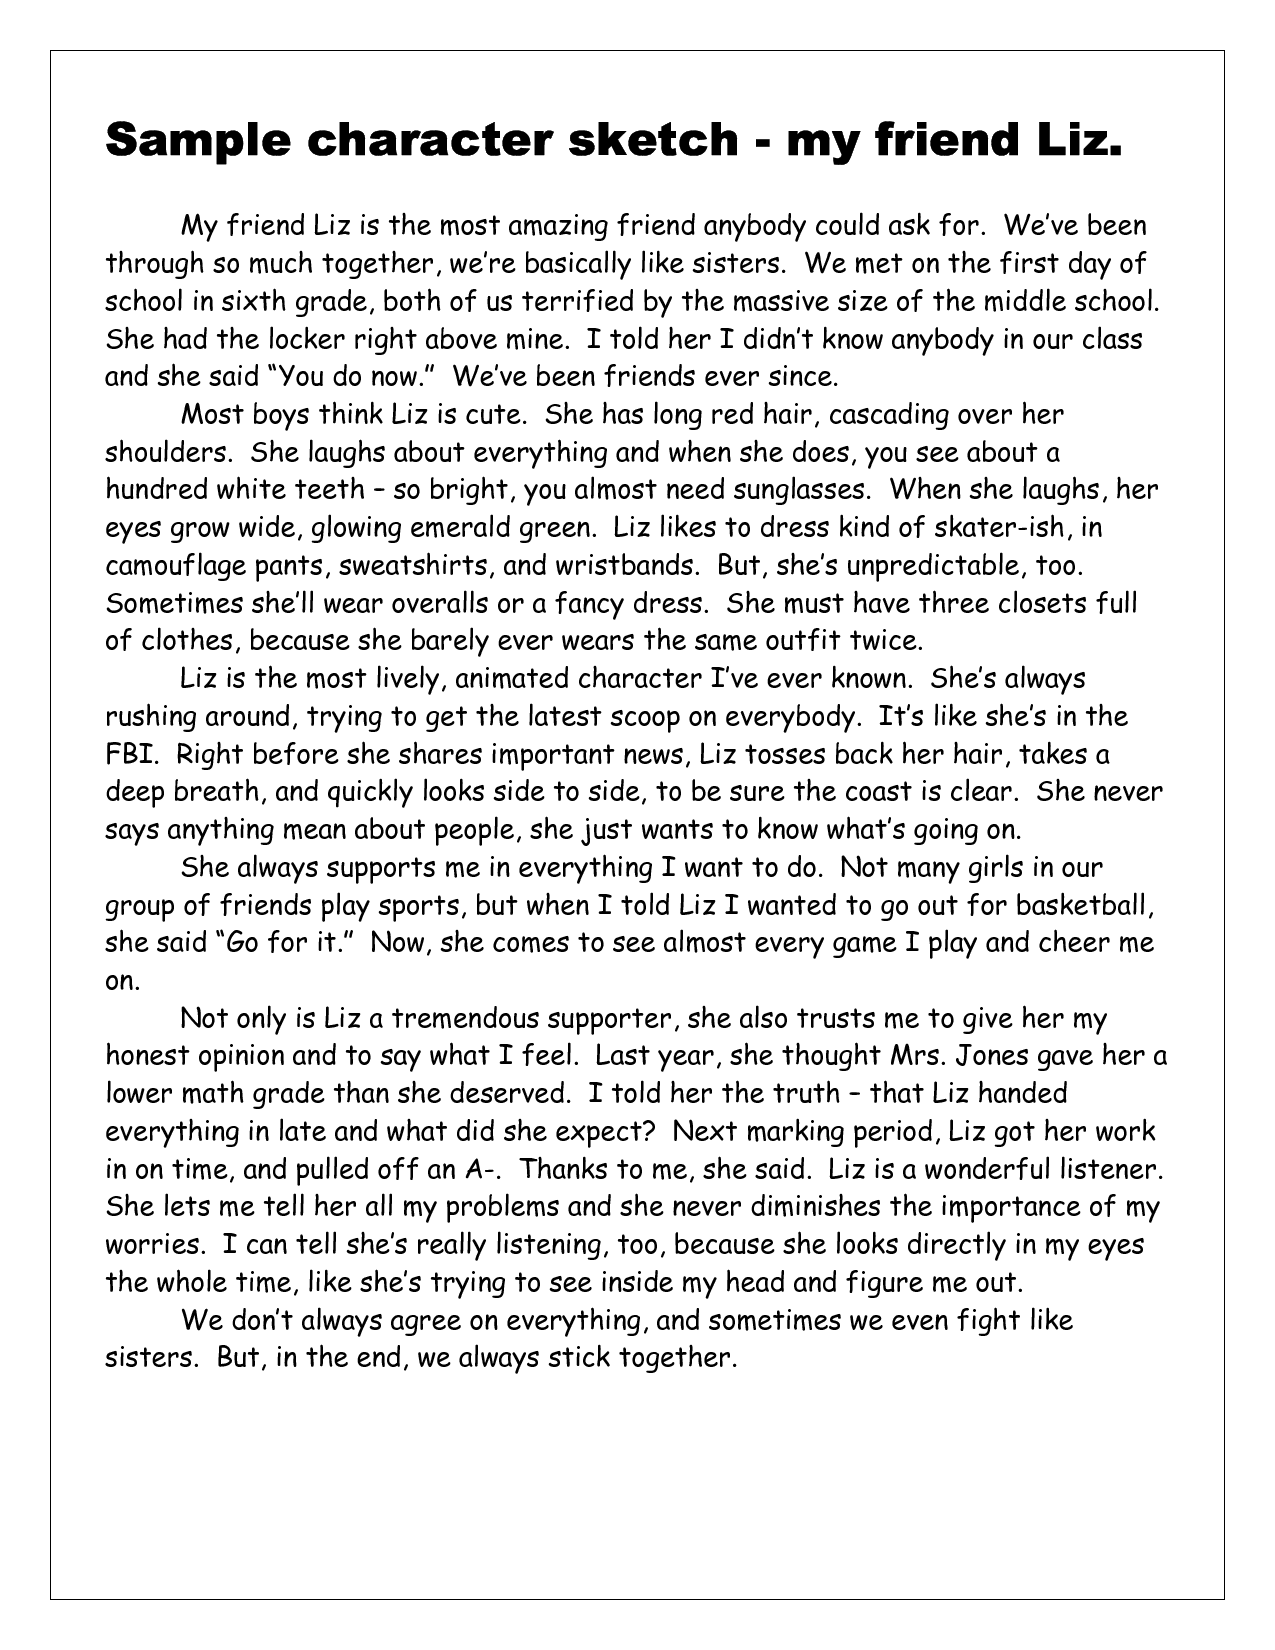 Essay about the best friend